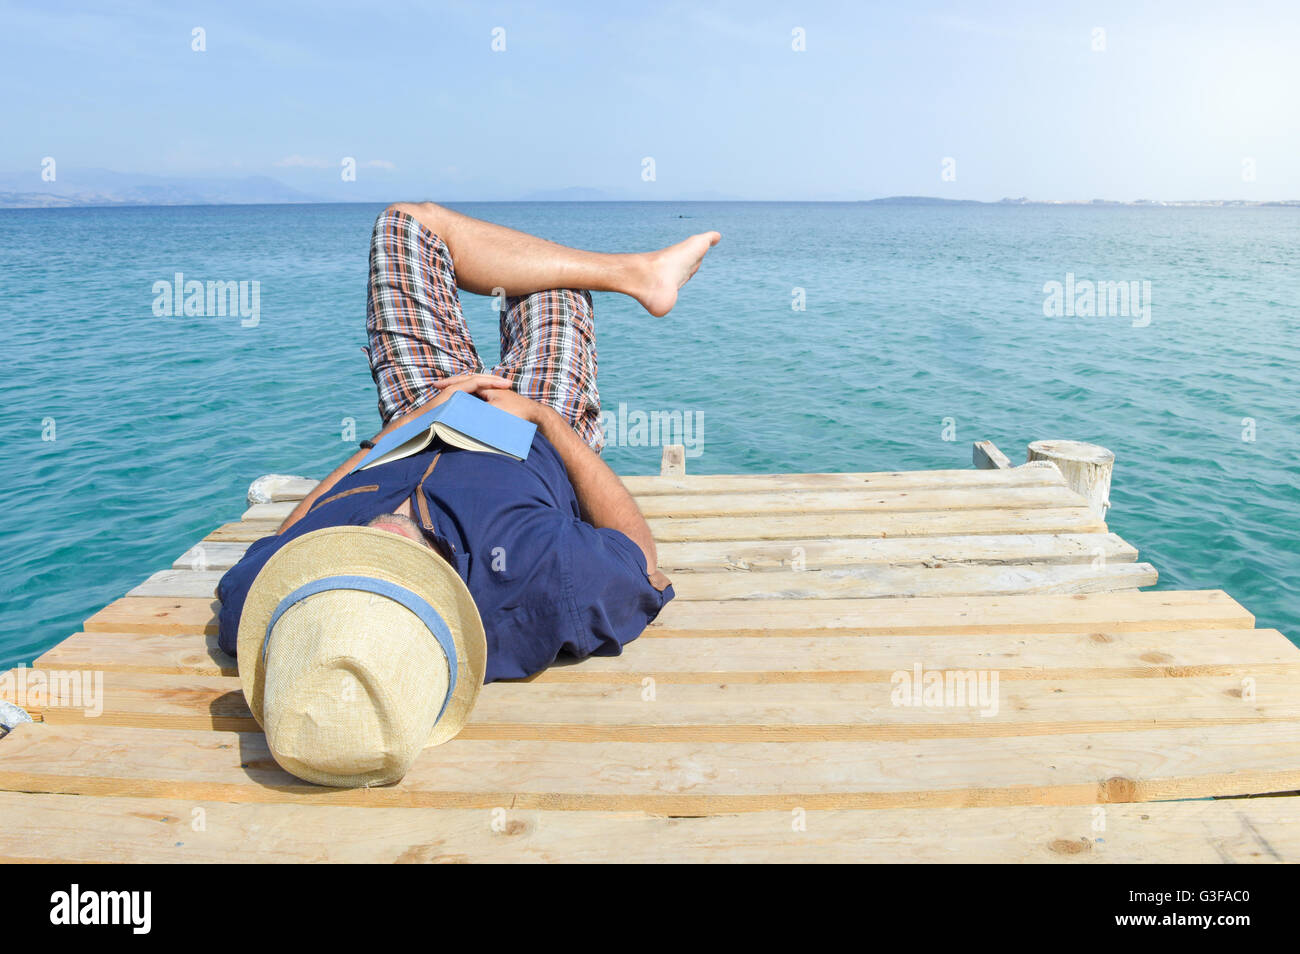 Man lying on the dock with a book. Summer vacation relaxation - Stock Image